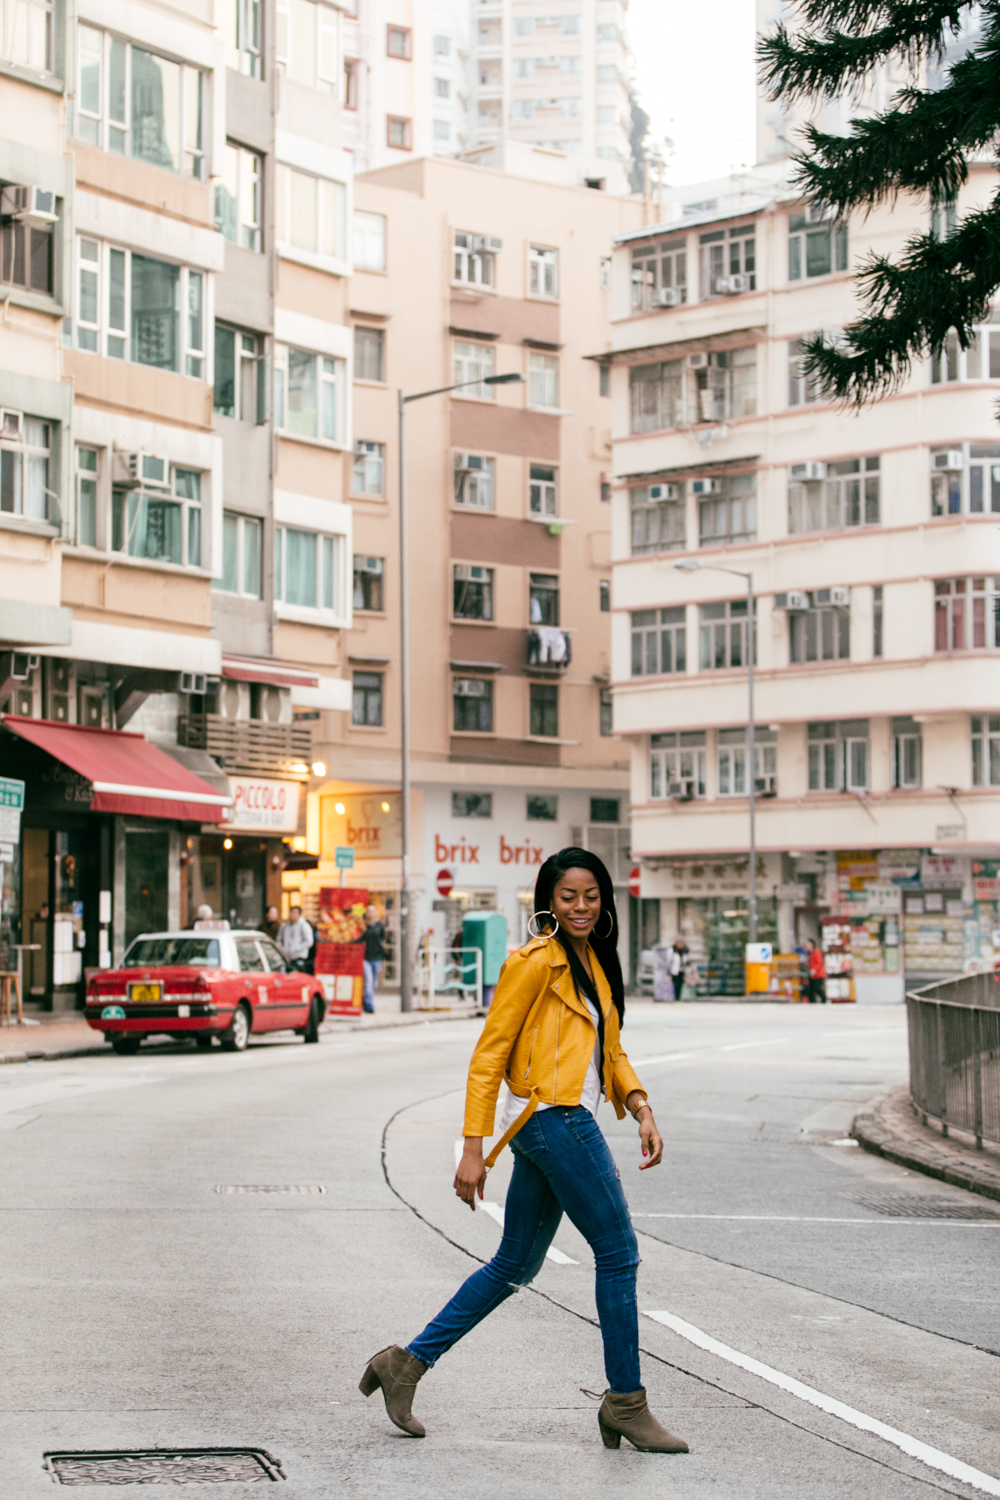 Tin Hau stride by | Hong Kong street portraits | by Tracy Wong